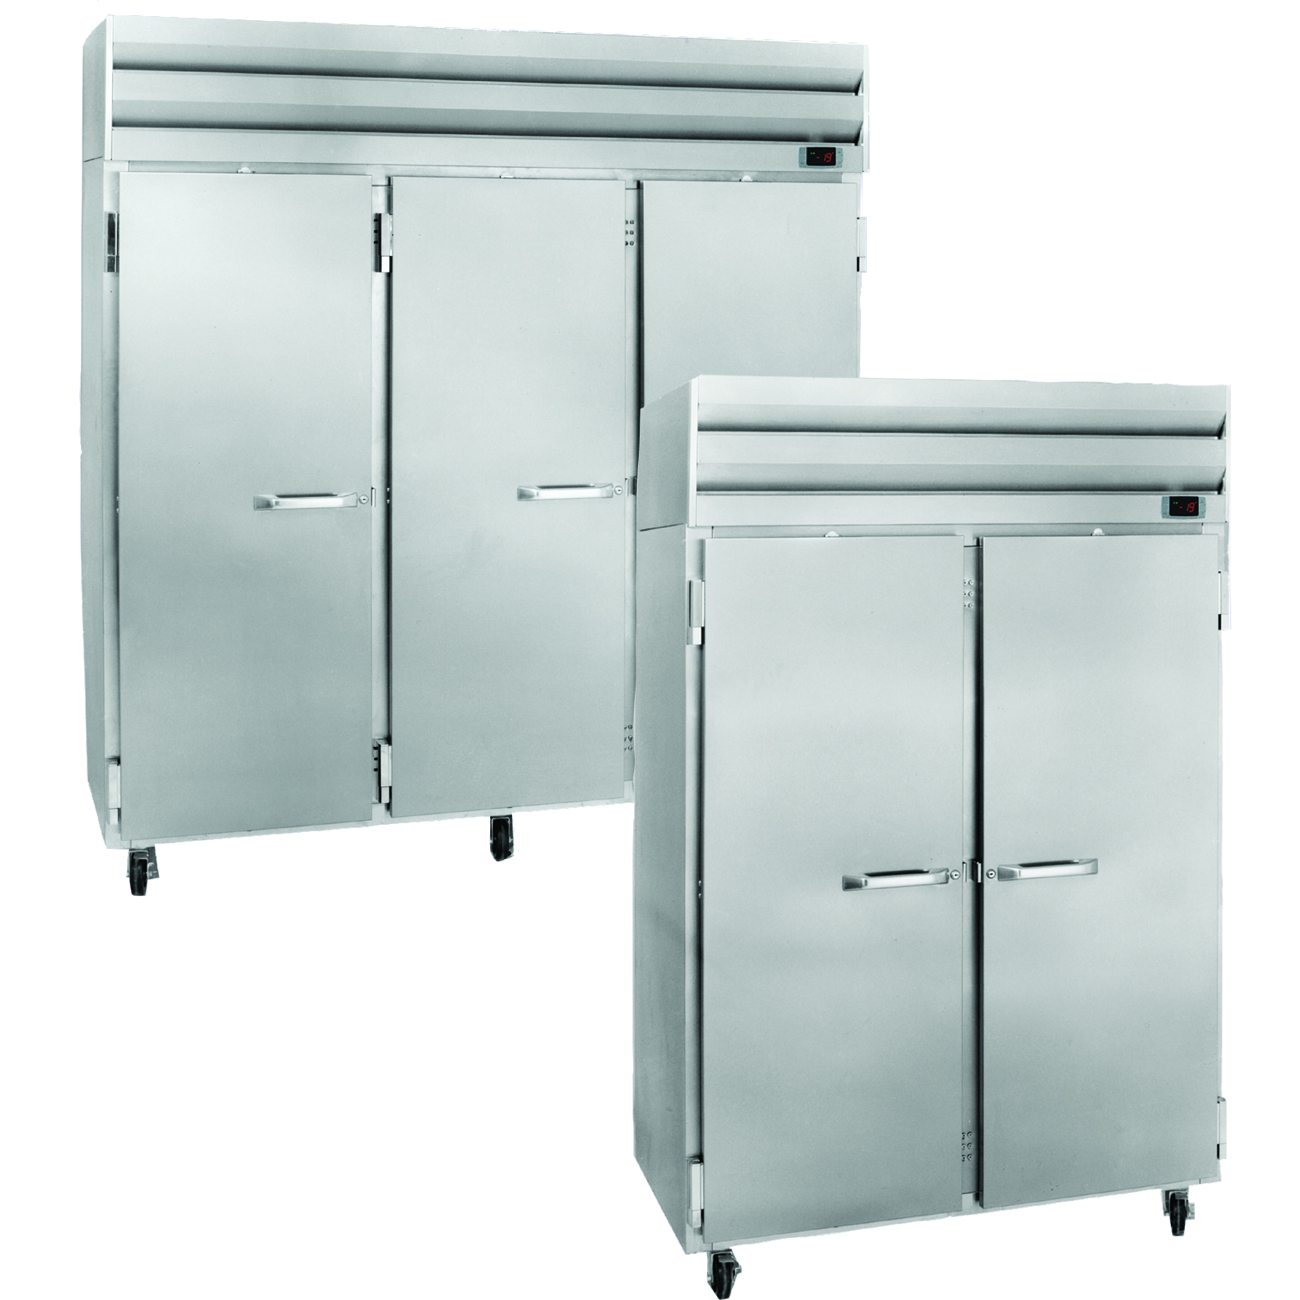 Howard-McCray SF75-LT freezer, reach-in